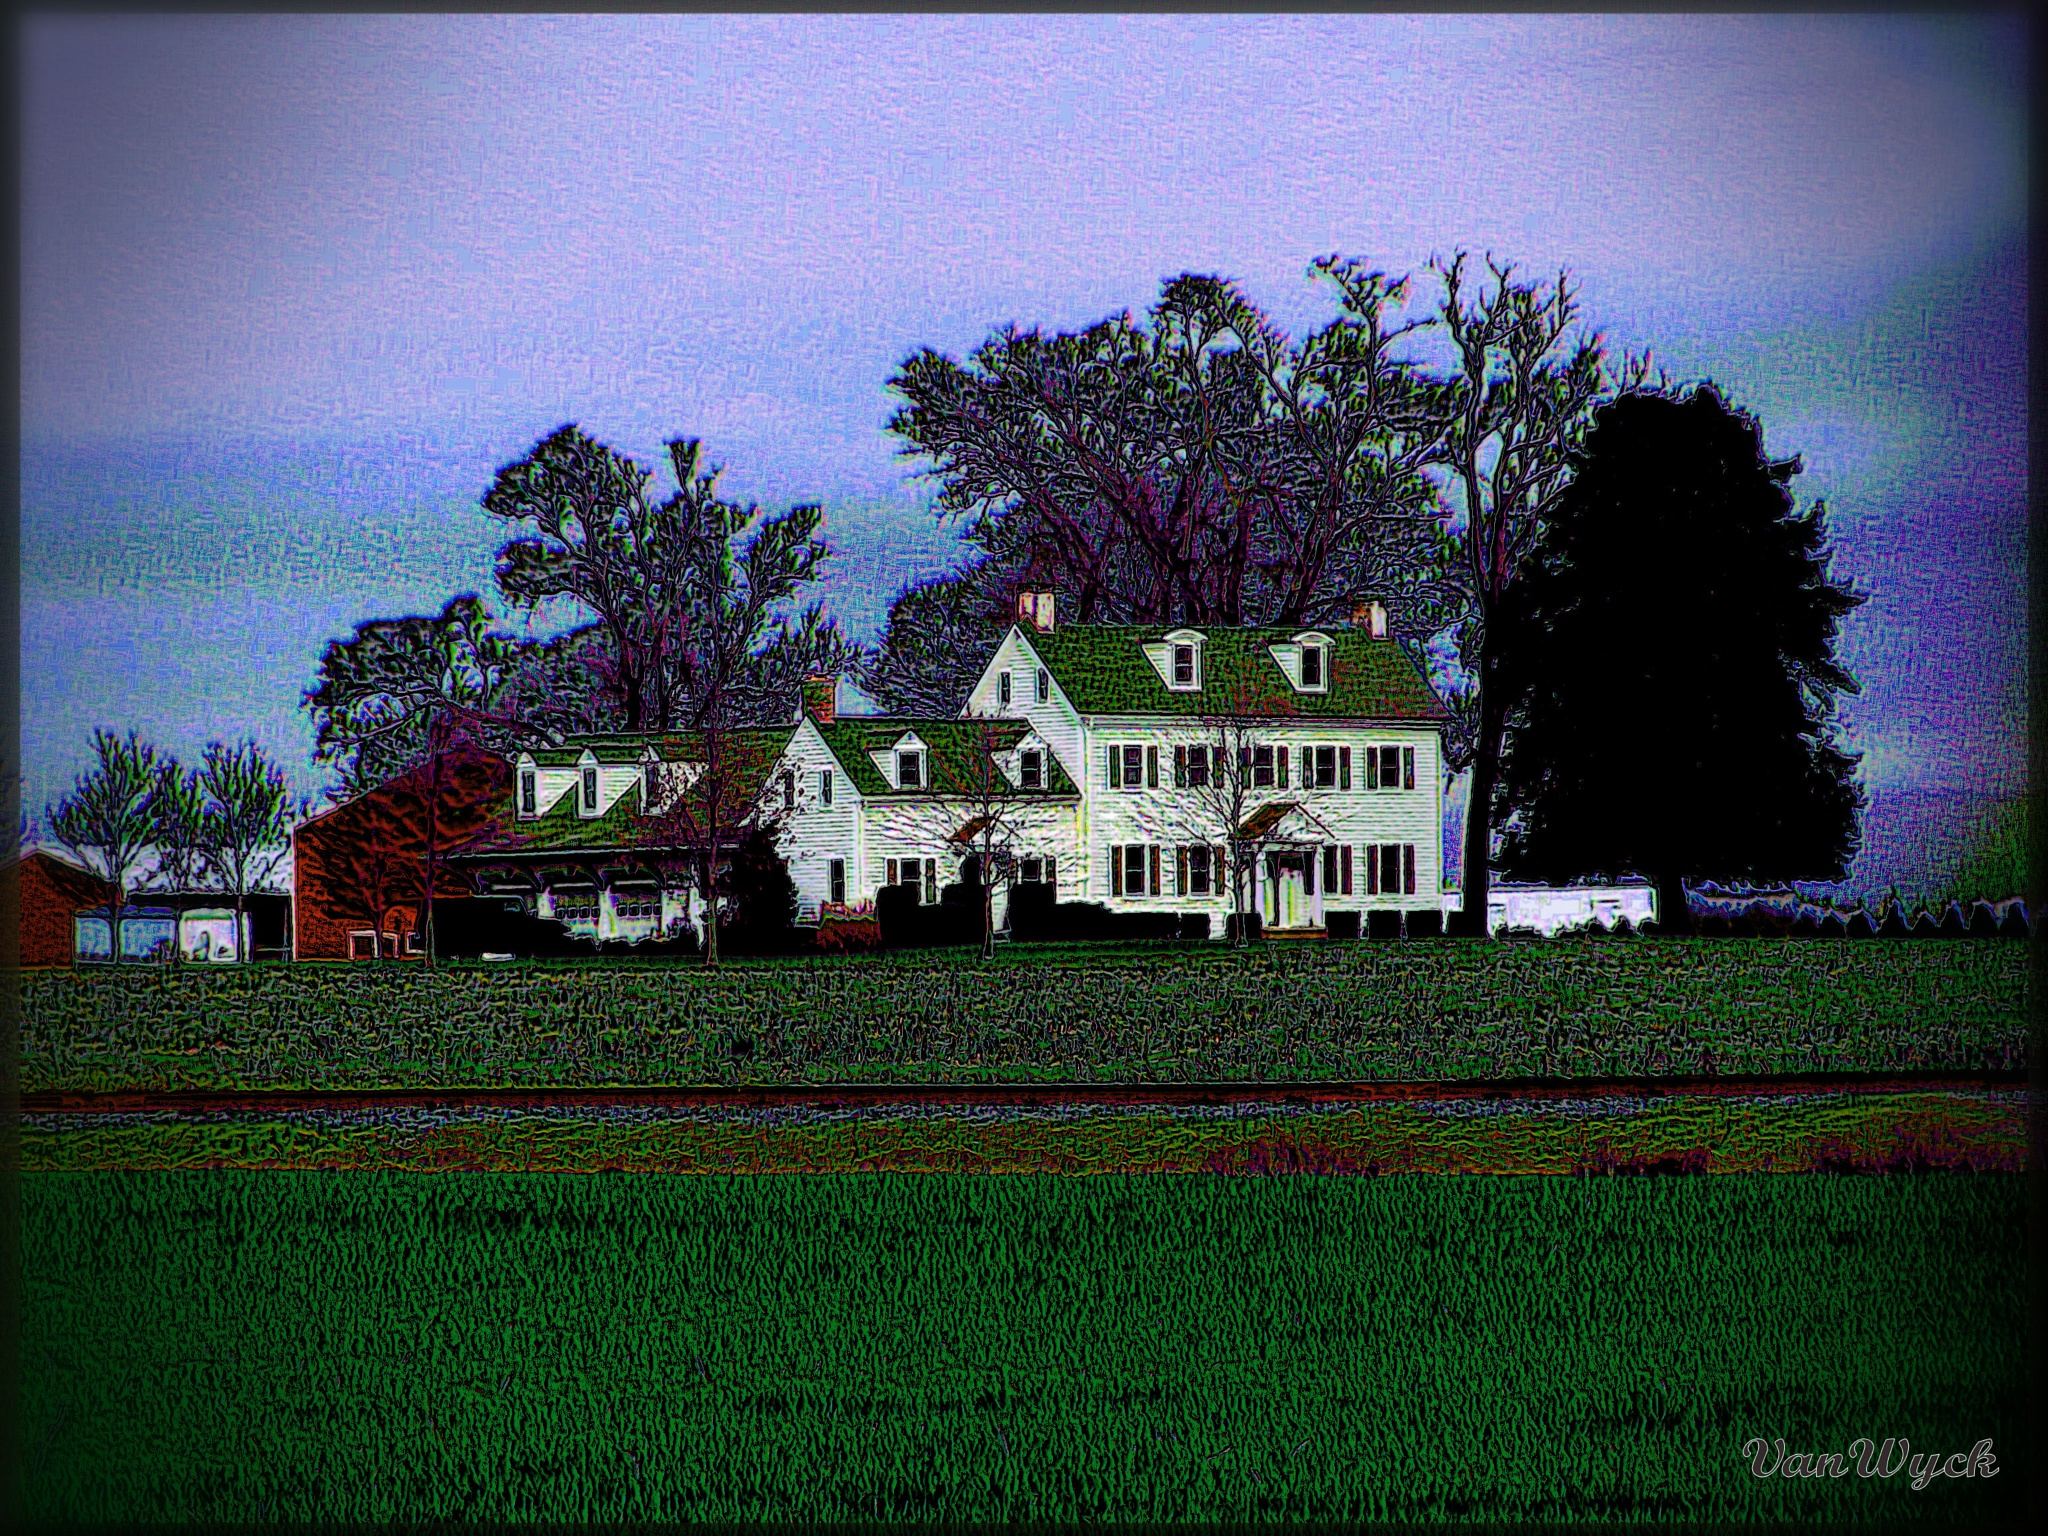 The Main House by VanWyck